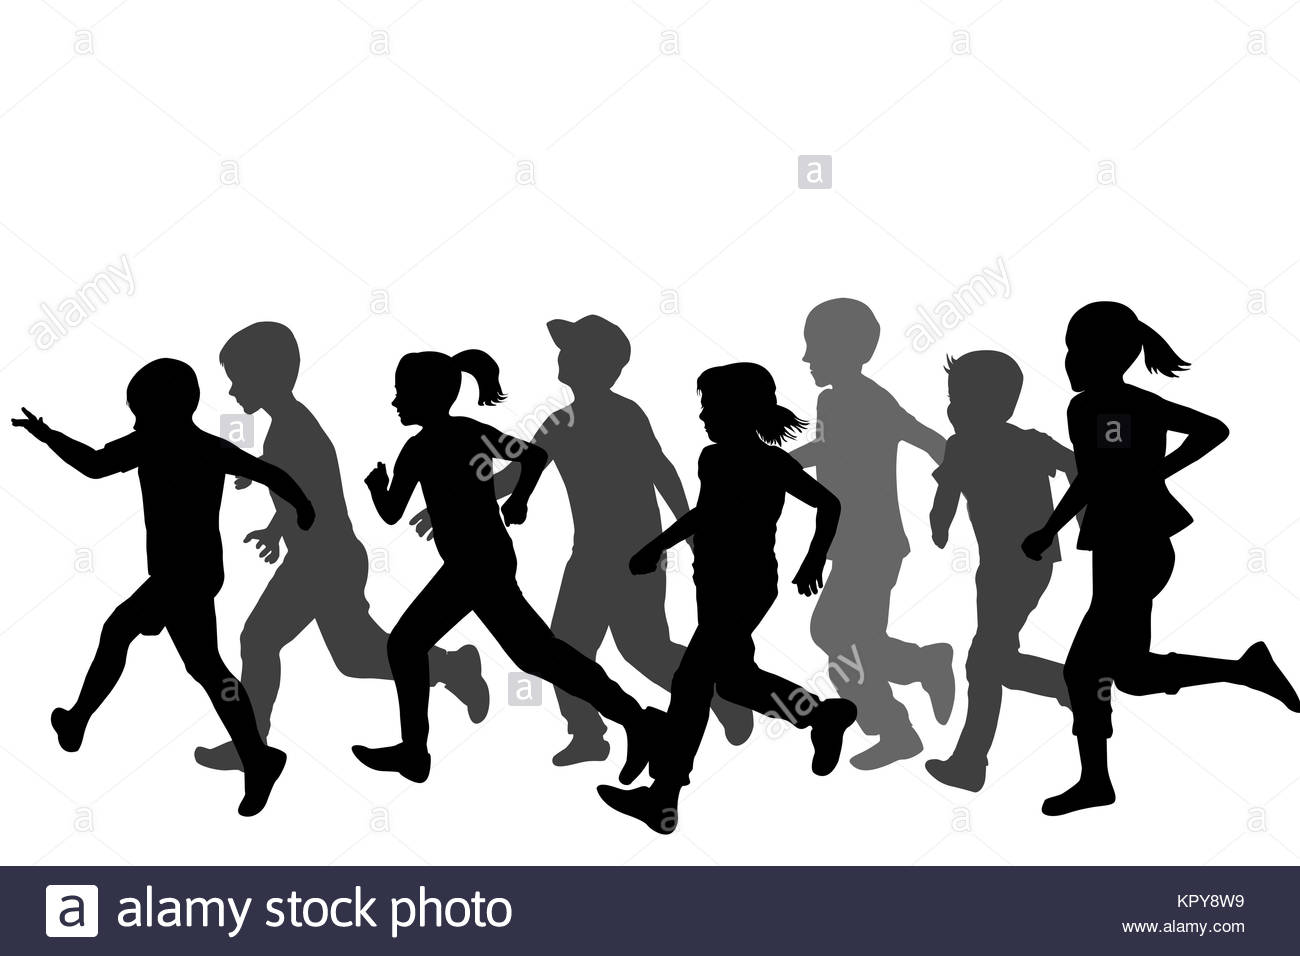 little girl running black and white stock photos amp images